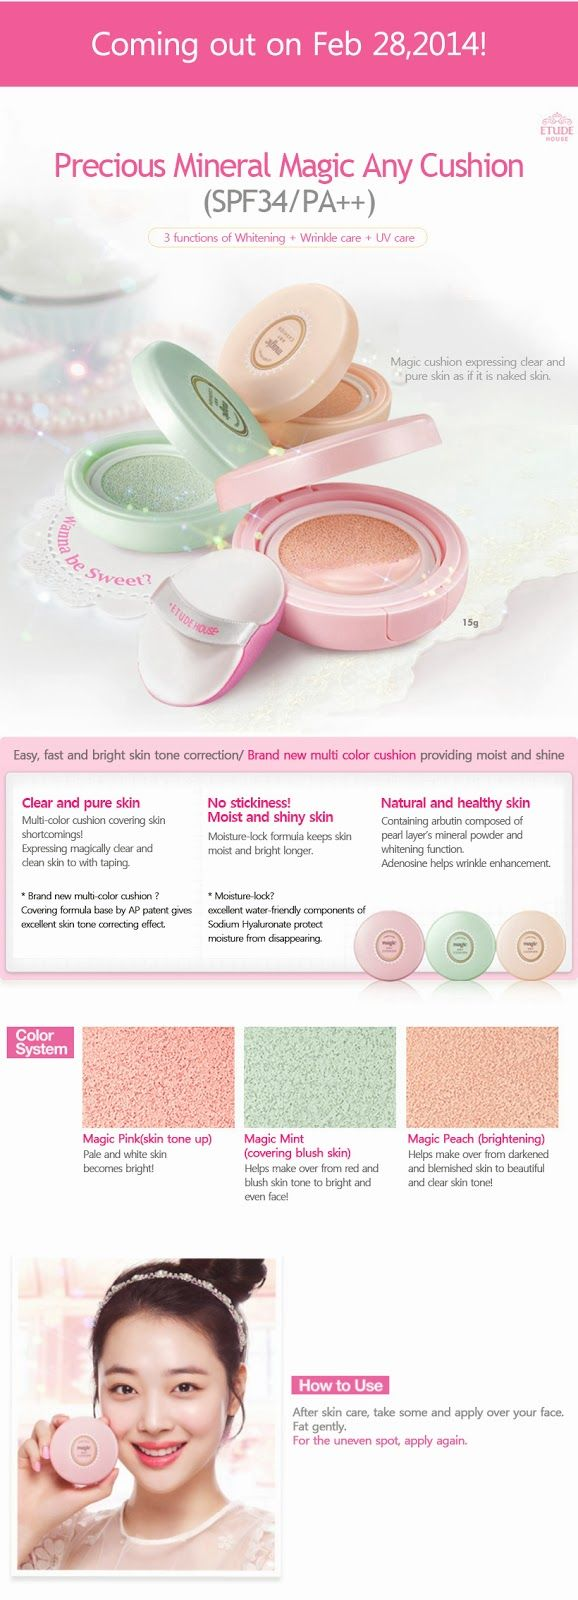 Etude House Korea Jakarta: Etude House Precious Mineral Magic Any Cushion SPF...